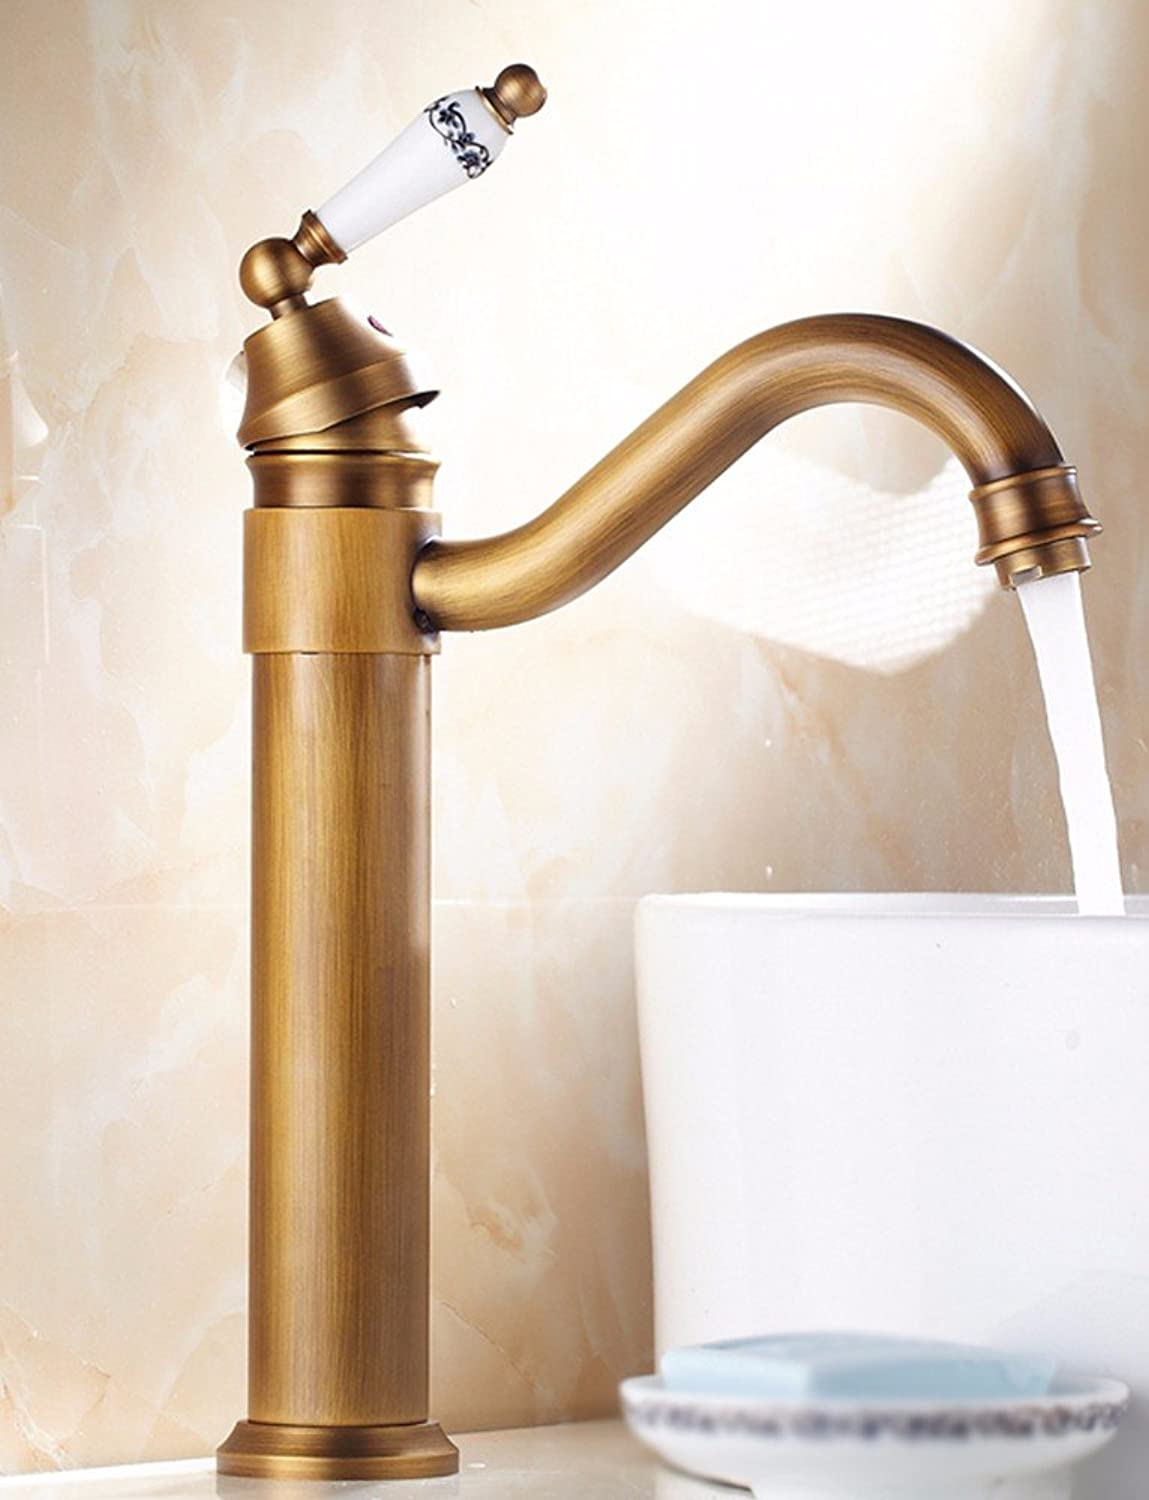 Hlluya Professional Sink Mixer Tap Kitchen Faucet Copper, cold and hot, Single Hole, redate, basin taps, 7